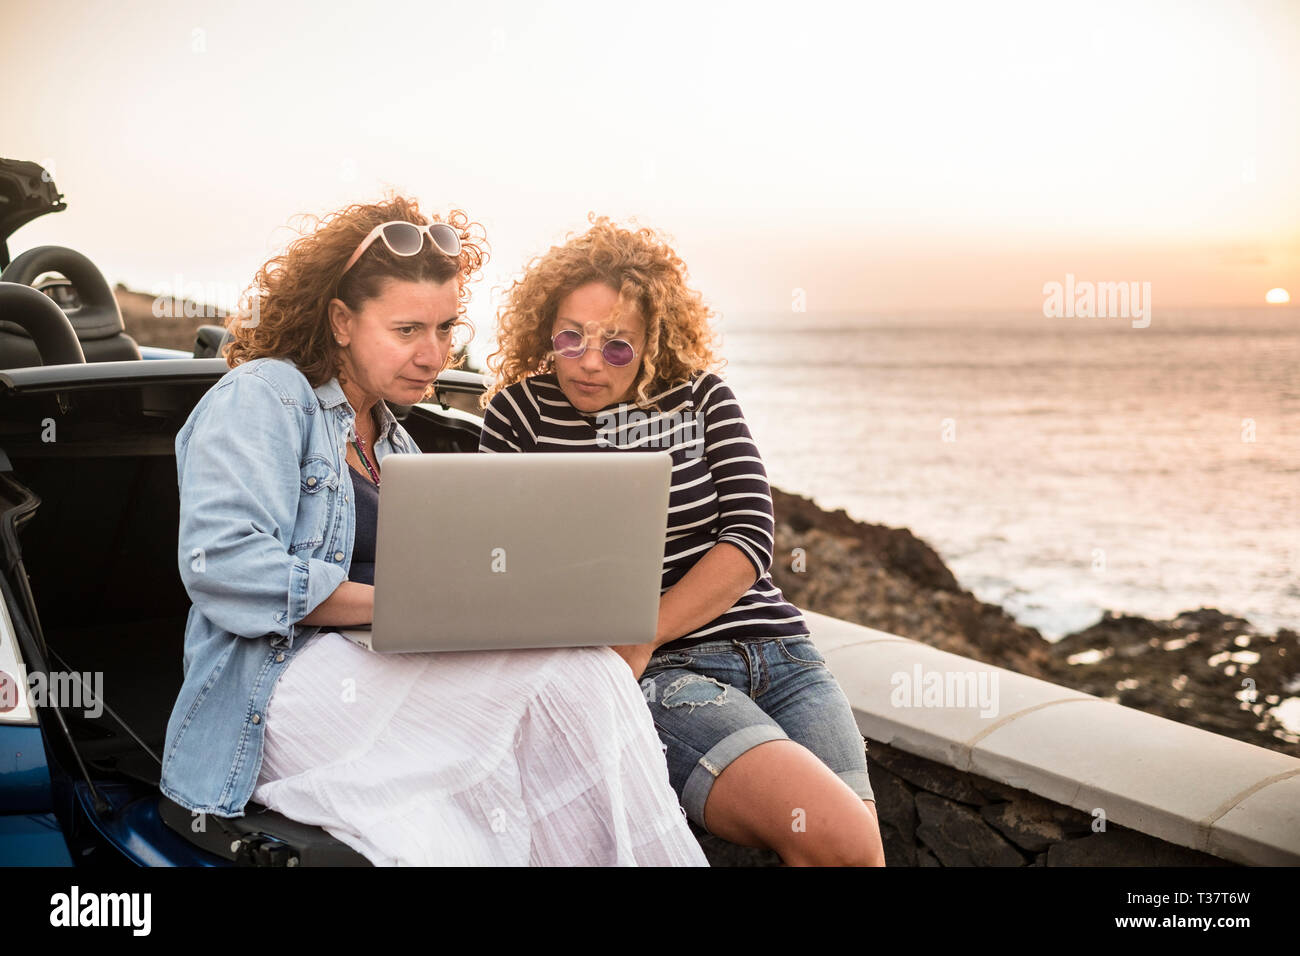 Couple of people women friends use together a laptop computer sitting on the back of convertible car and sunset on the ocean in background - work ever Stock Photo